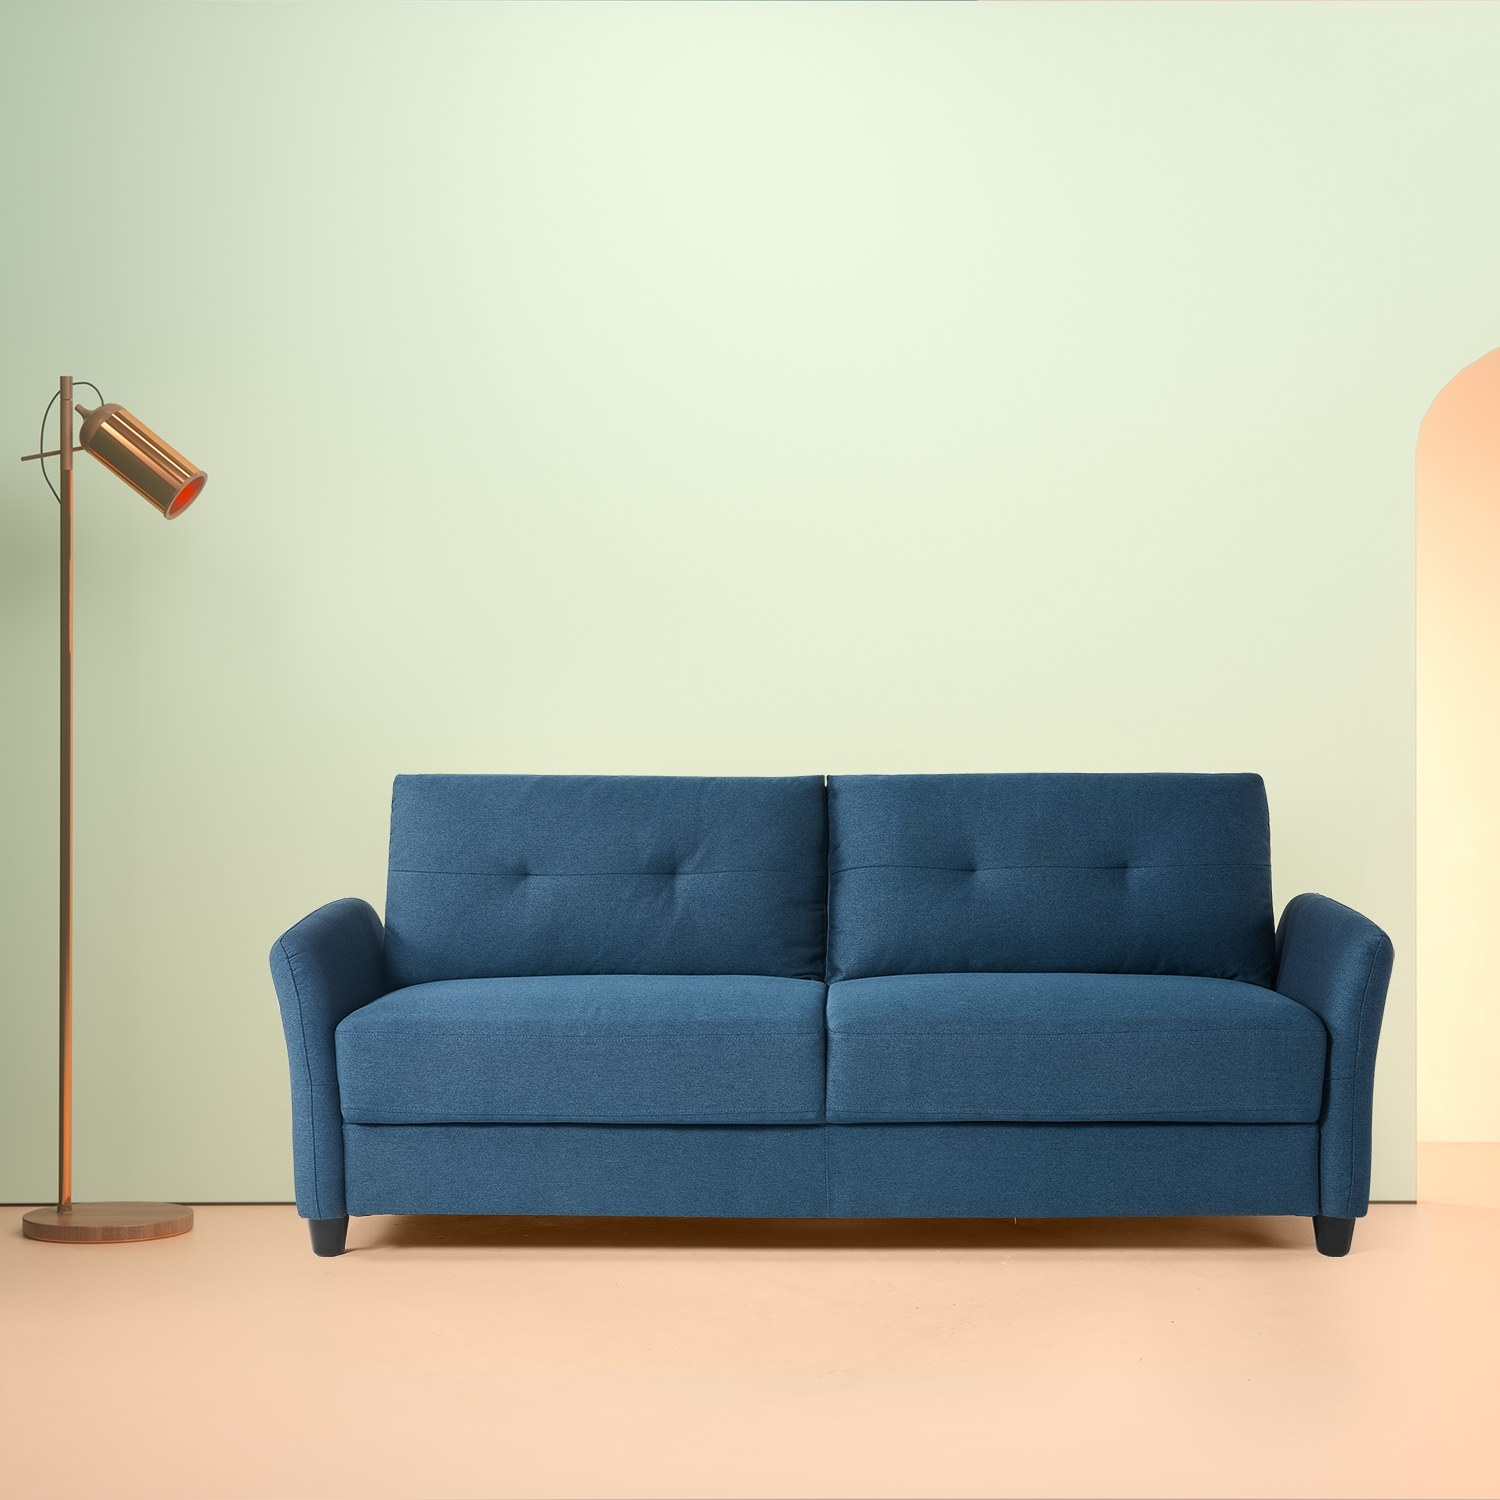 The teal couch with flared arms, plush cushions, and some tufted button detailing on the back